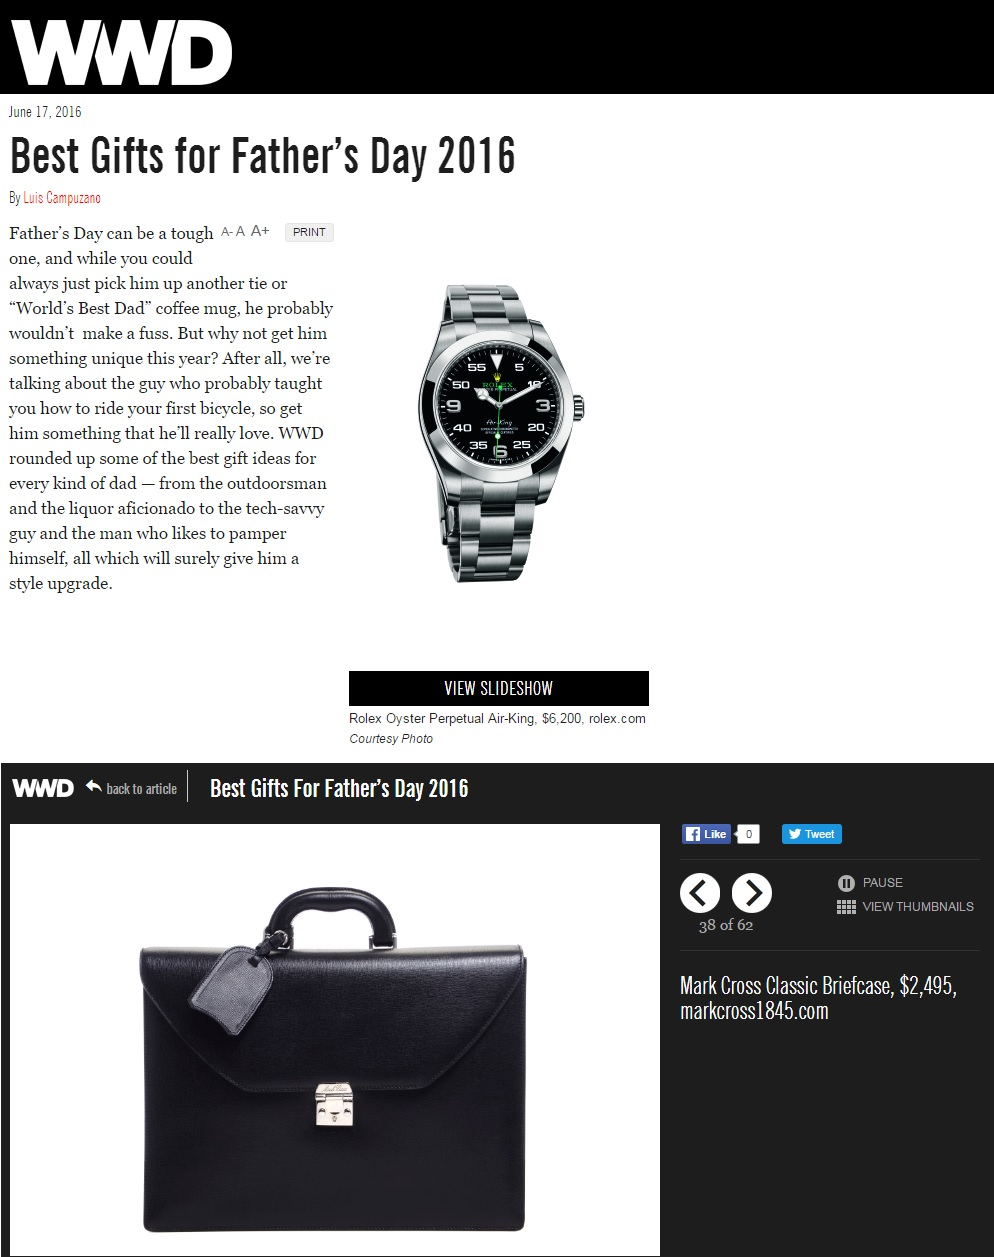 WWD.com - Best Gifts for Father's Day 2016 - June 17, 2016.jpg